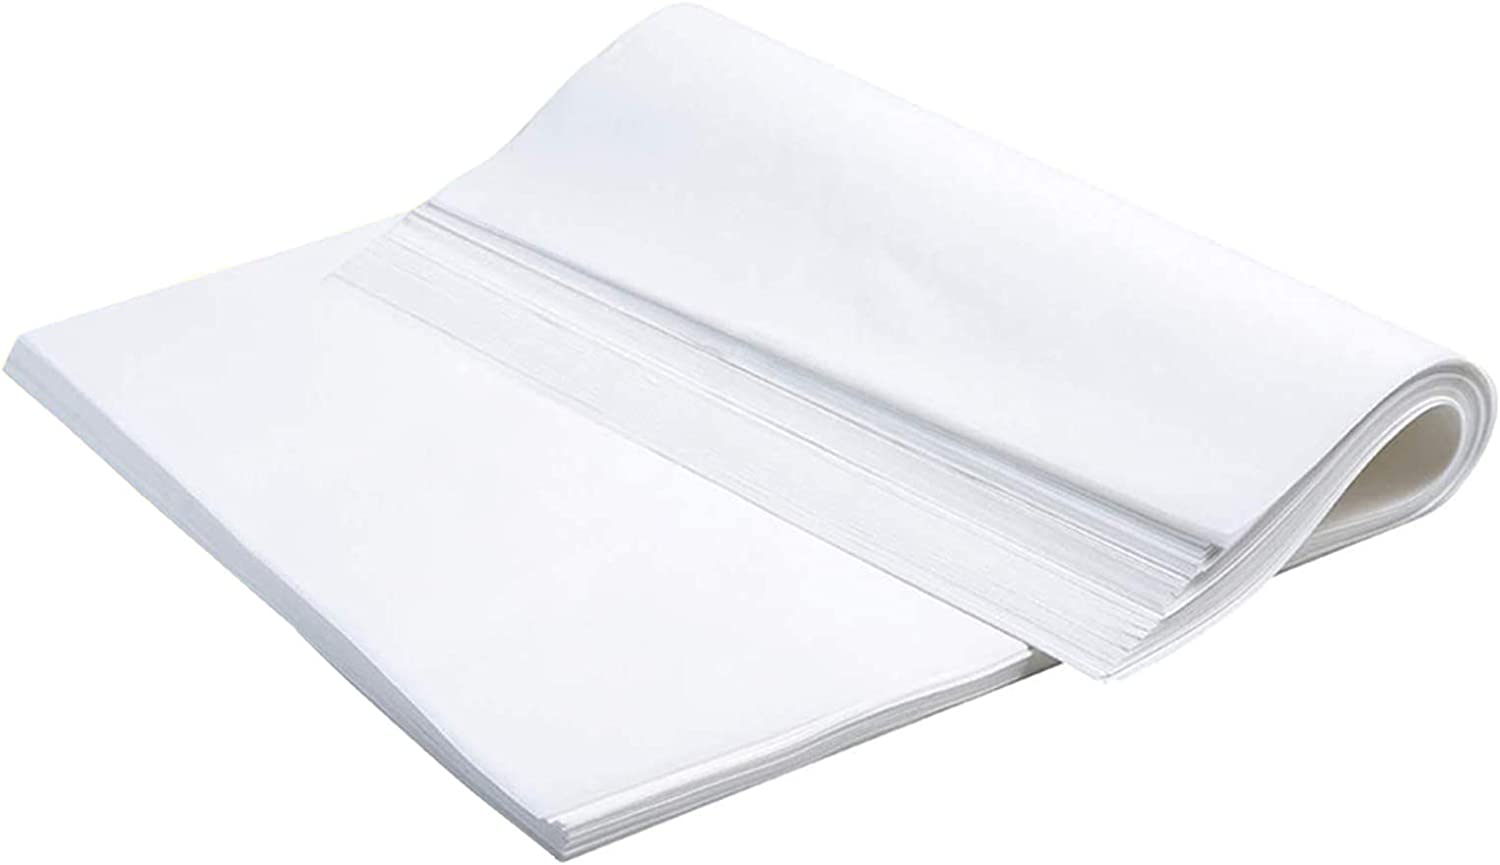 100 Pcs Parchment Paper Baking Sheet Perfect Non-Stick Parchment Sheets for Baking supplies Hot Dog Buns, Air Fryer, Cookie Sheet 12x16 Inch Parchment Paper (white-100)